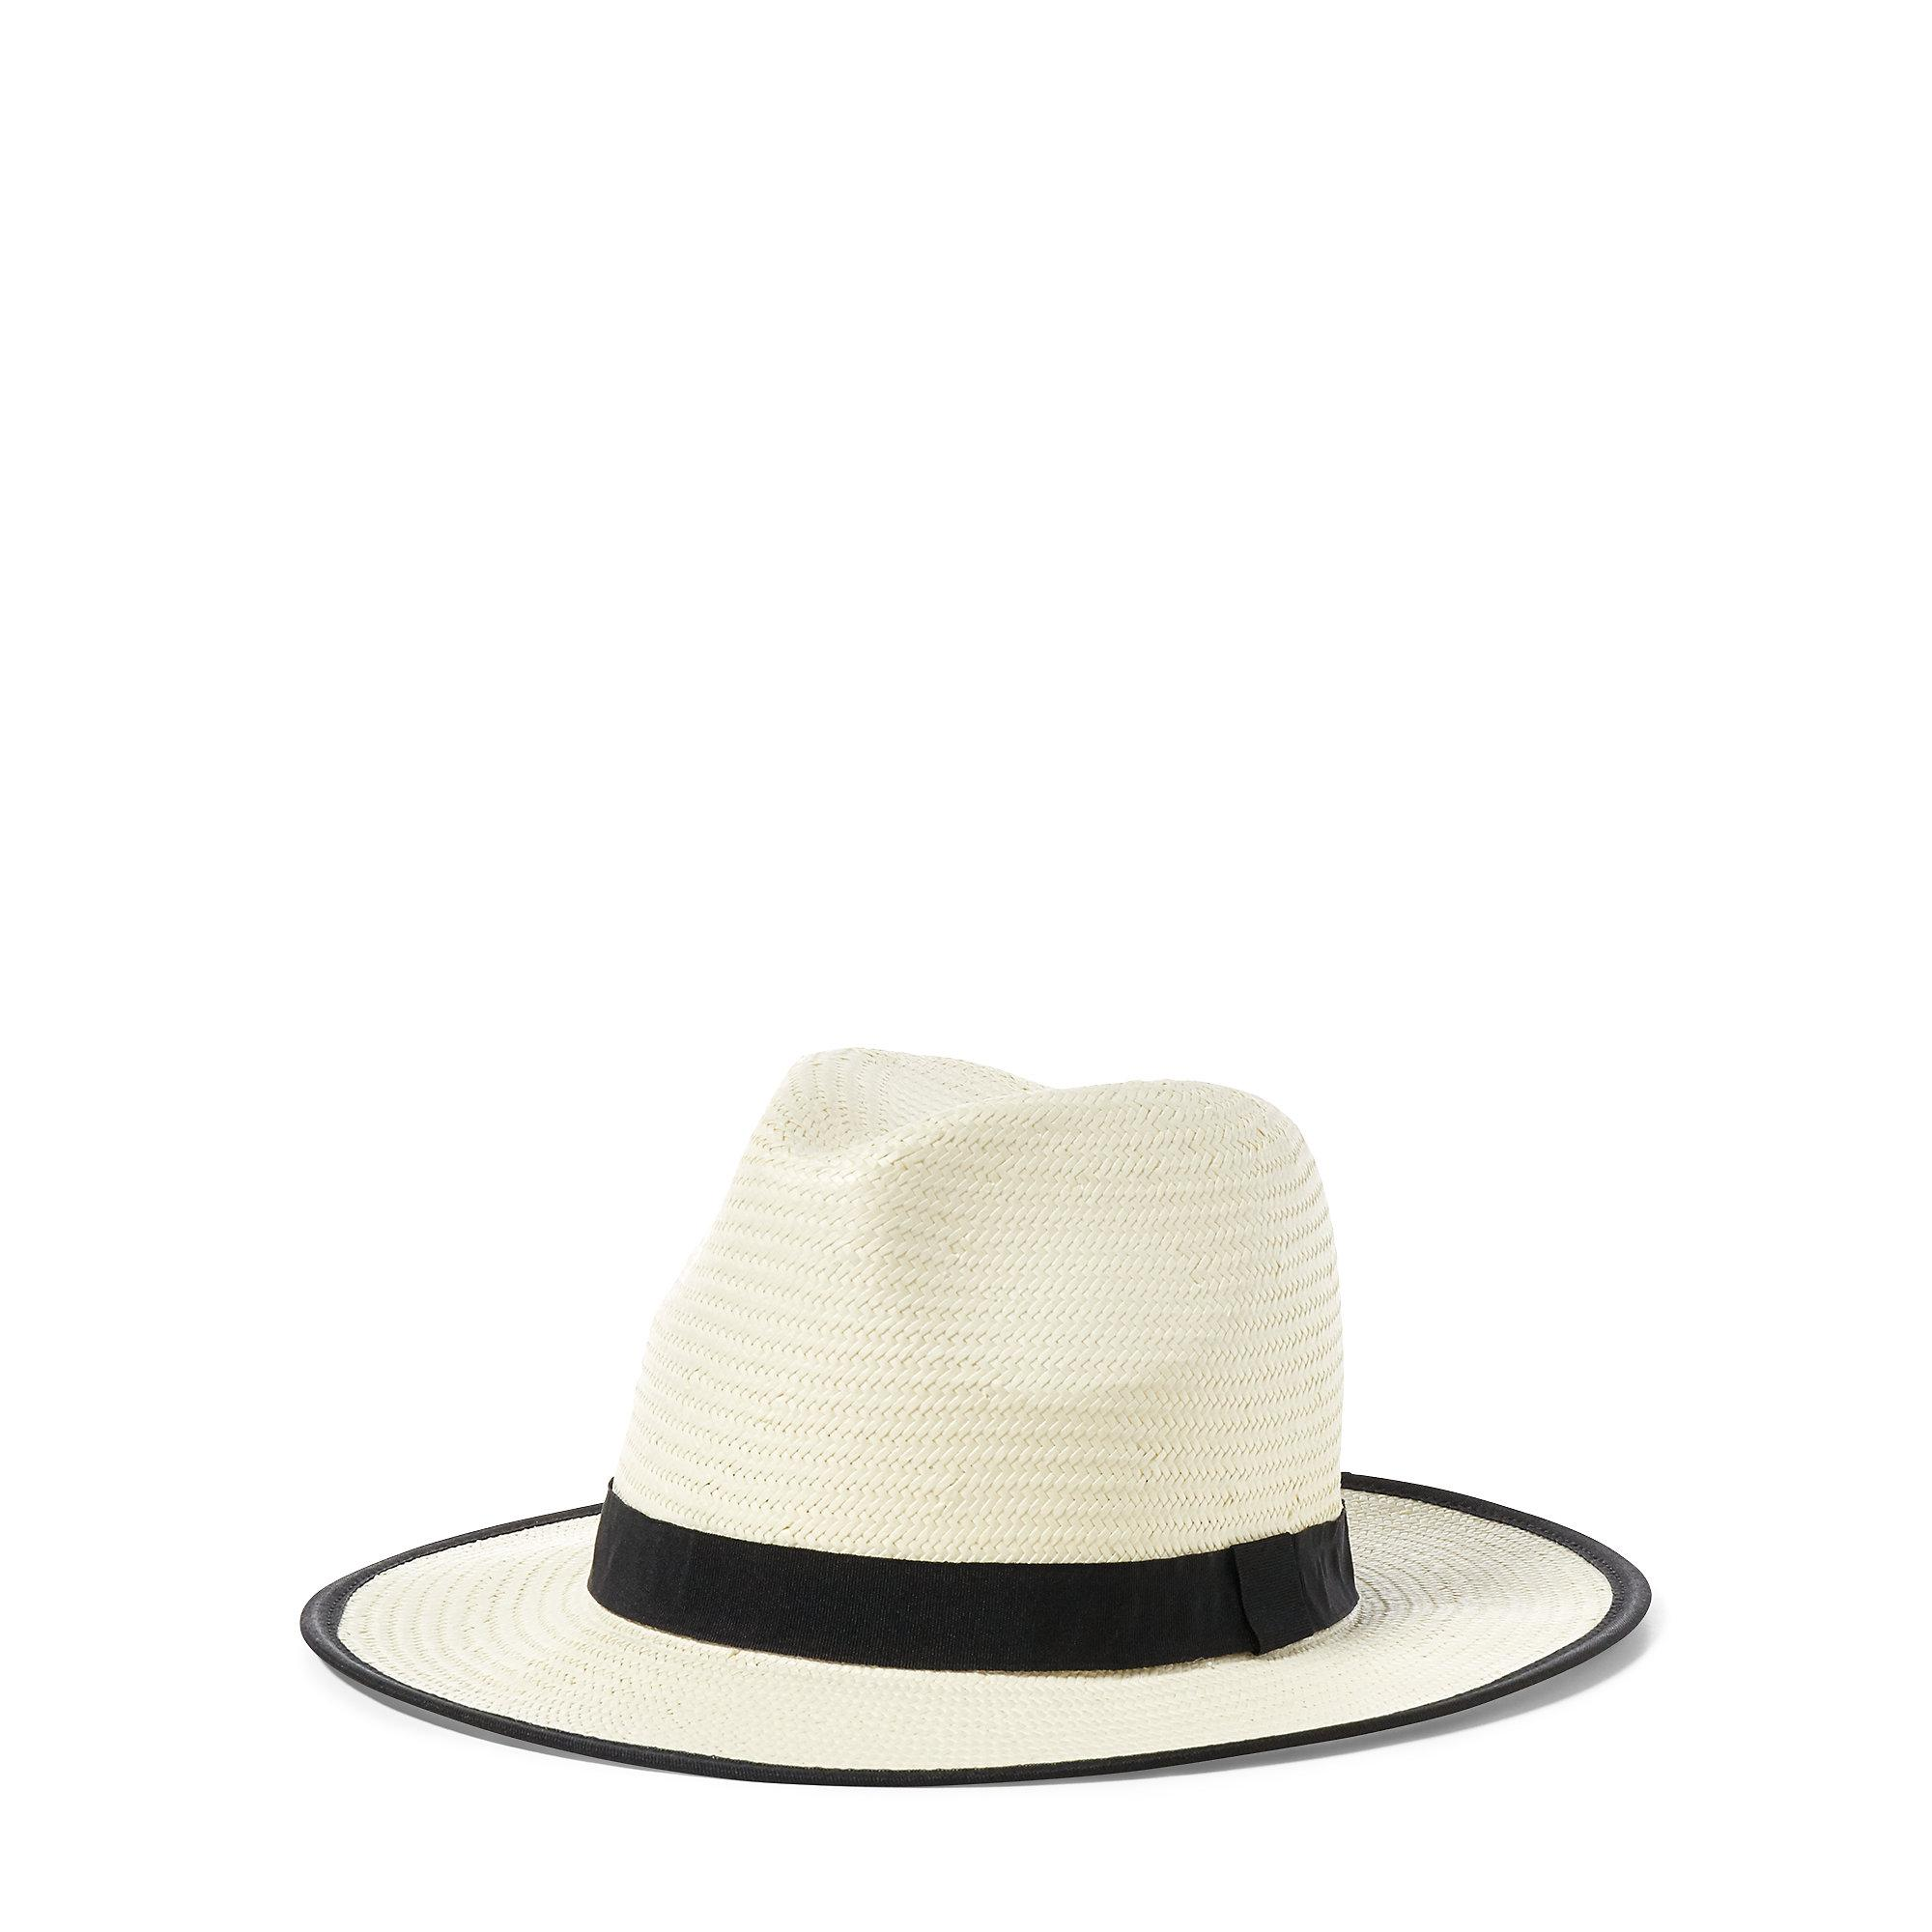 Polo Ralph Lauren Synthetic Polo Panama Hat in Natural for Men - Lyst